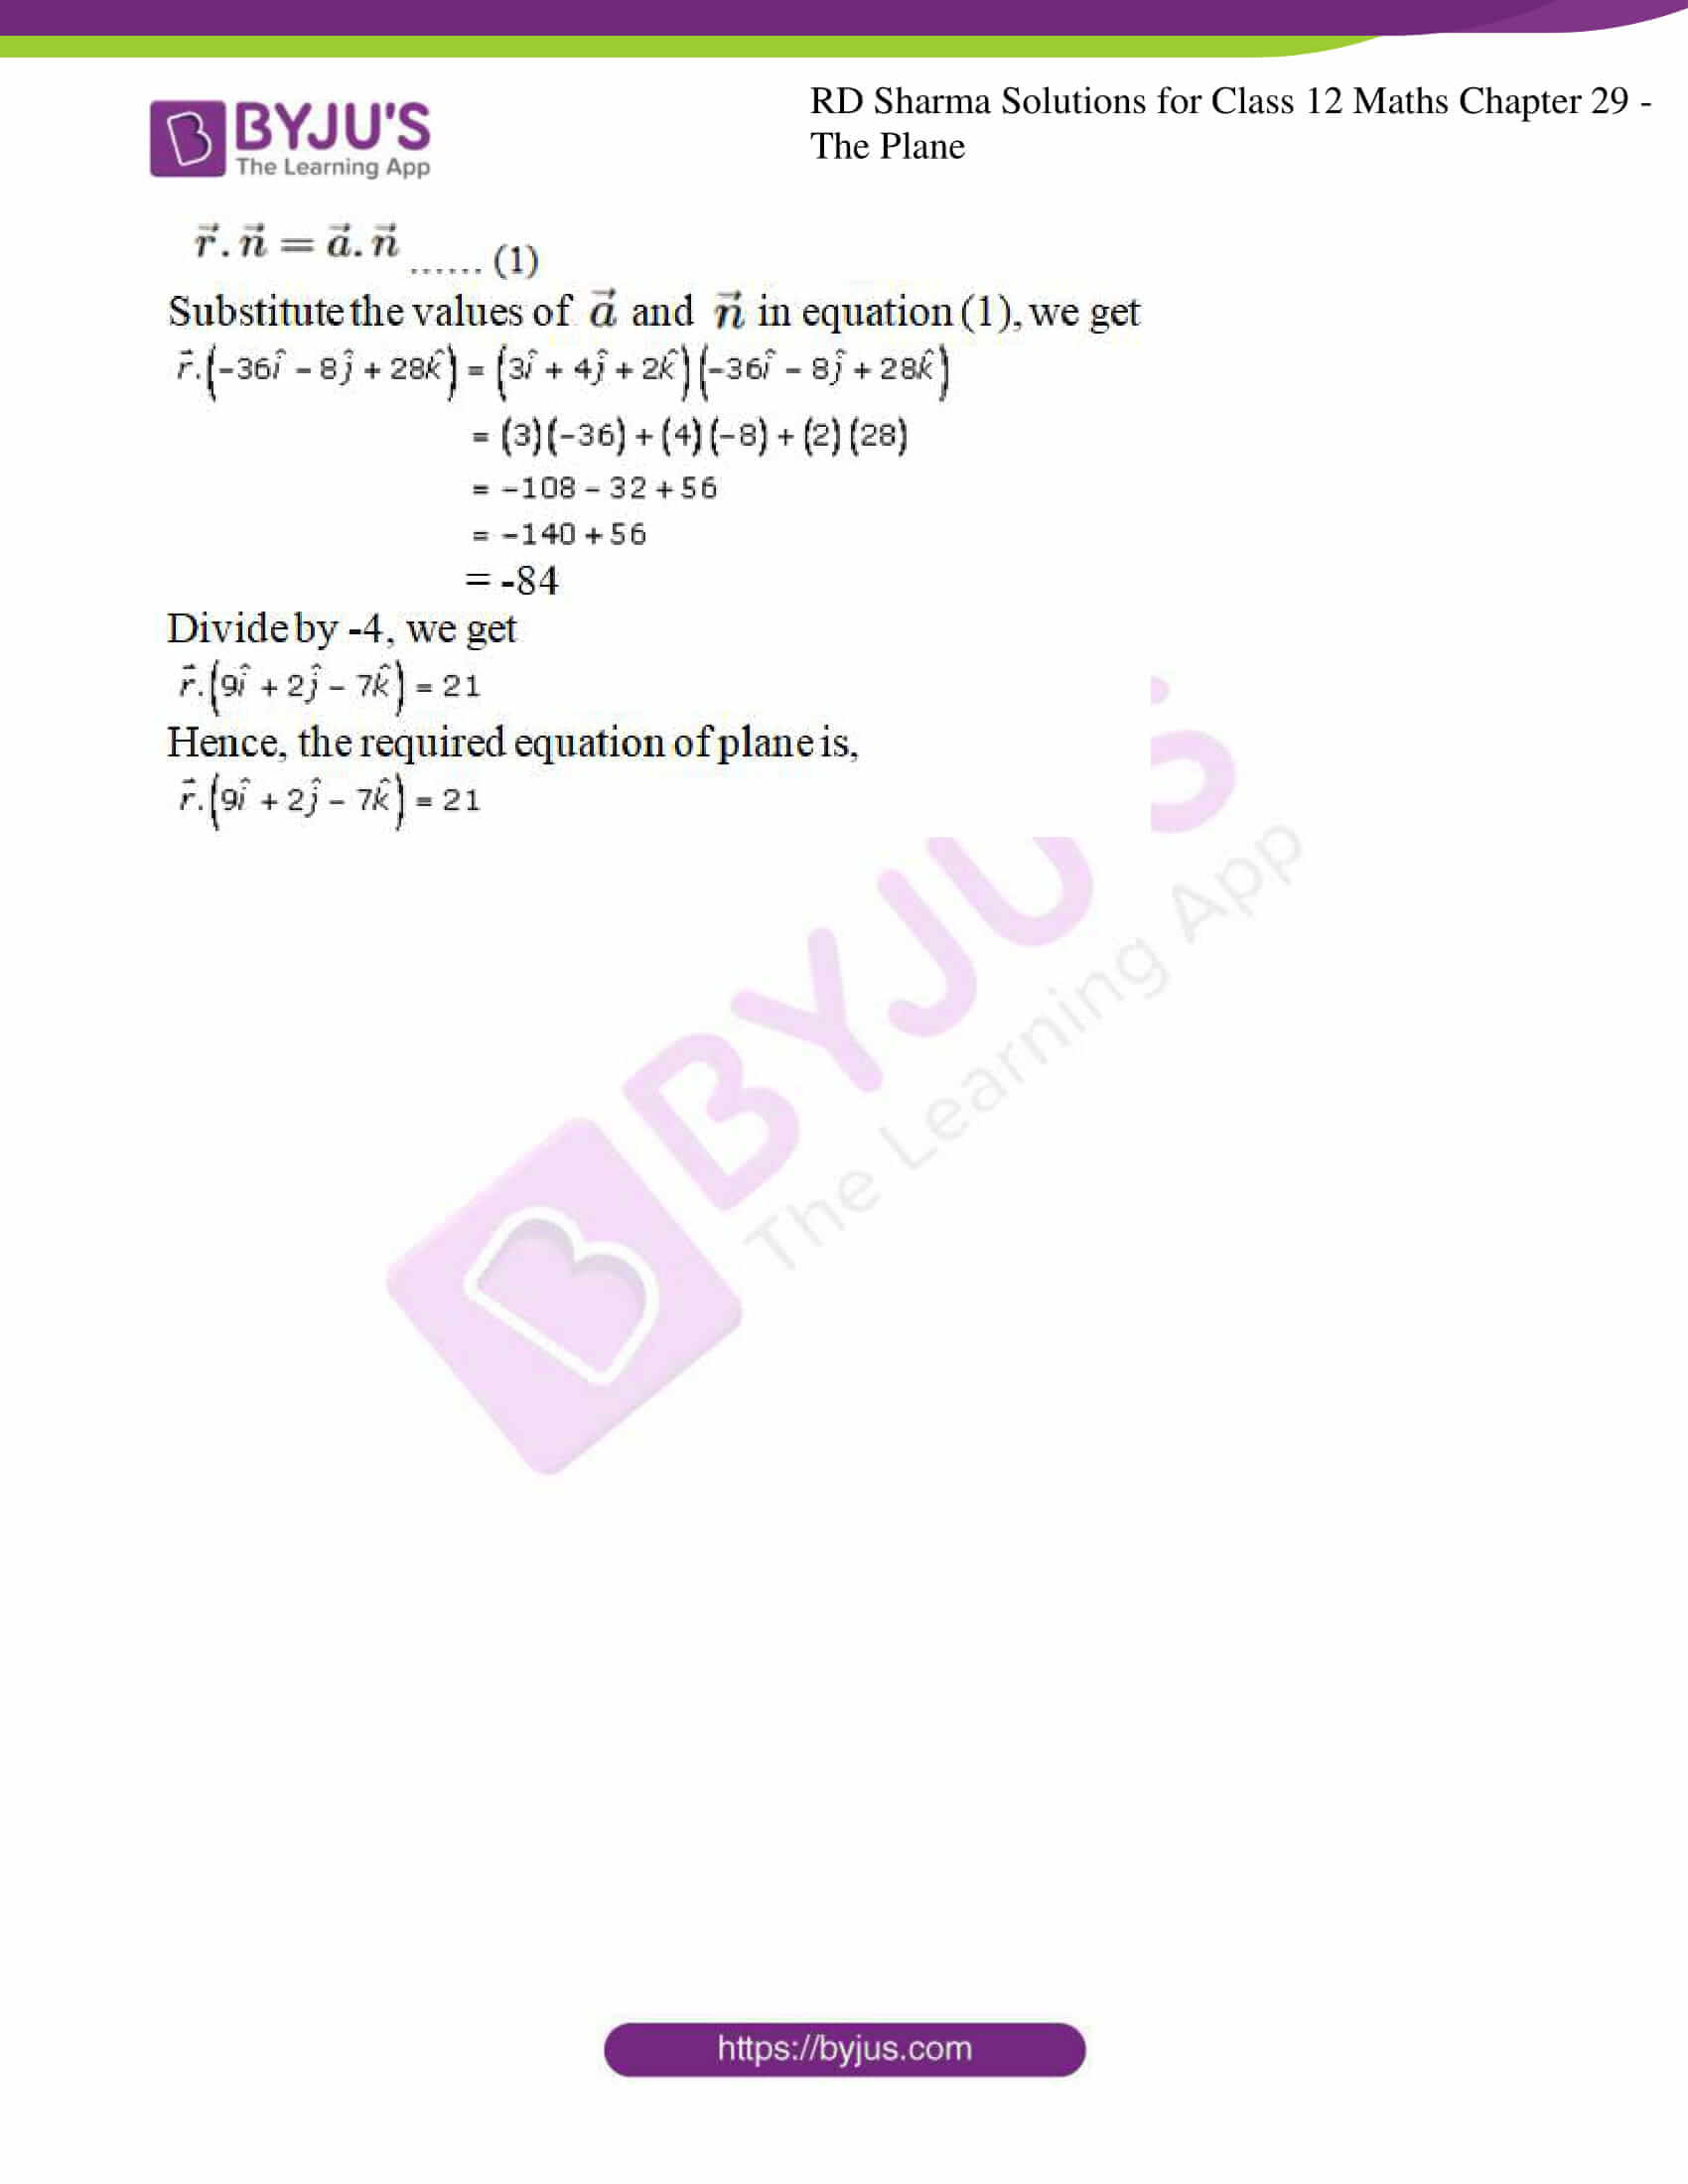 rd sharma solutions for class 12 maths chapter 29 ex 5 5